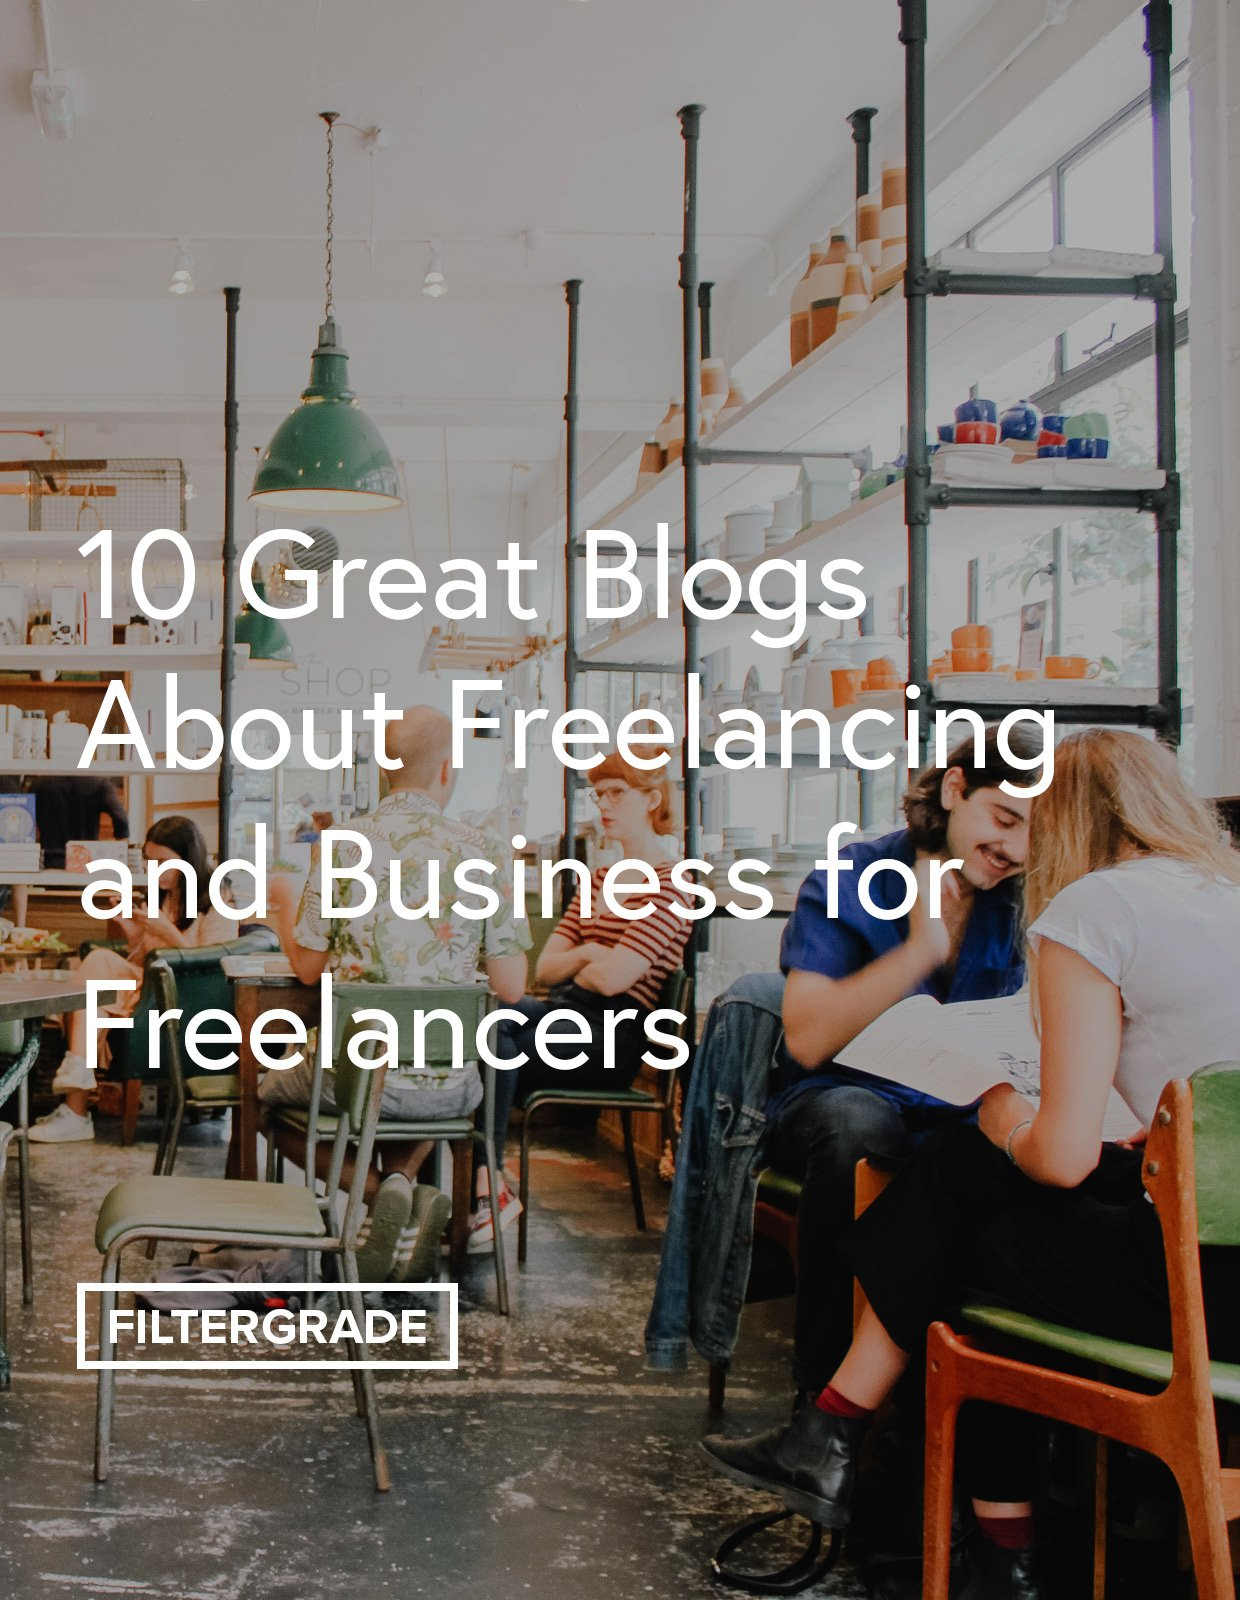 Looking at great blogs and websites to learn about freelancing and the business side of being a freelancer.